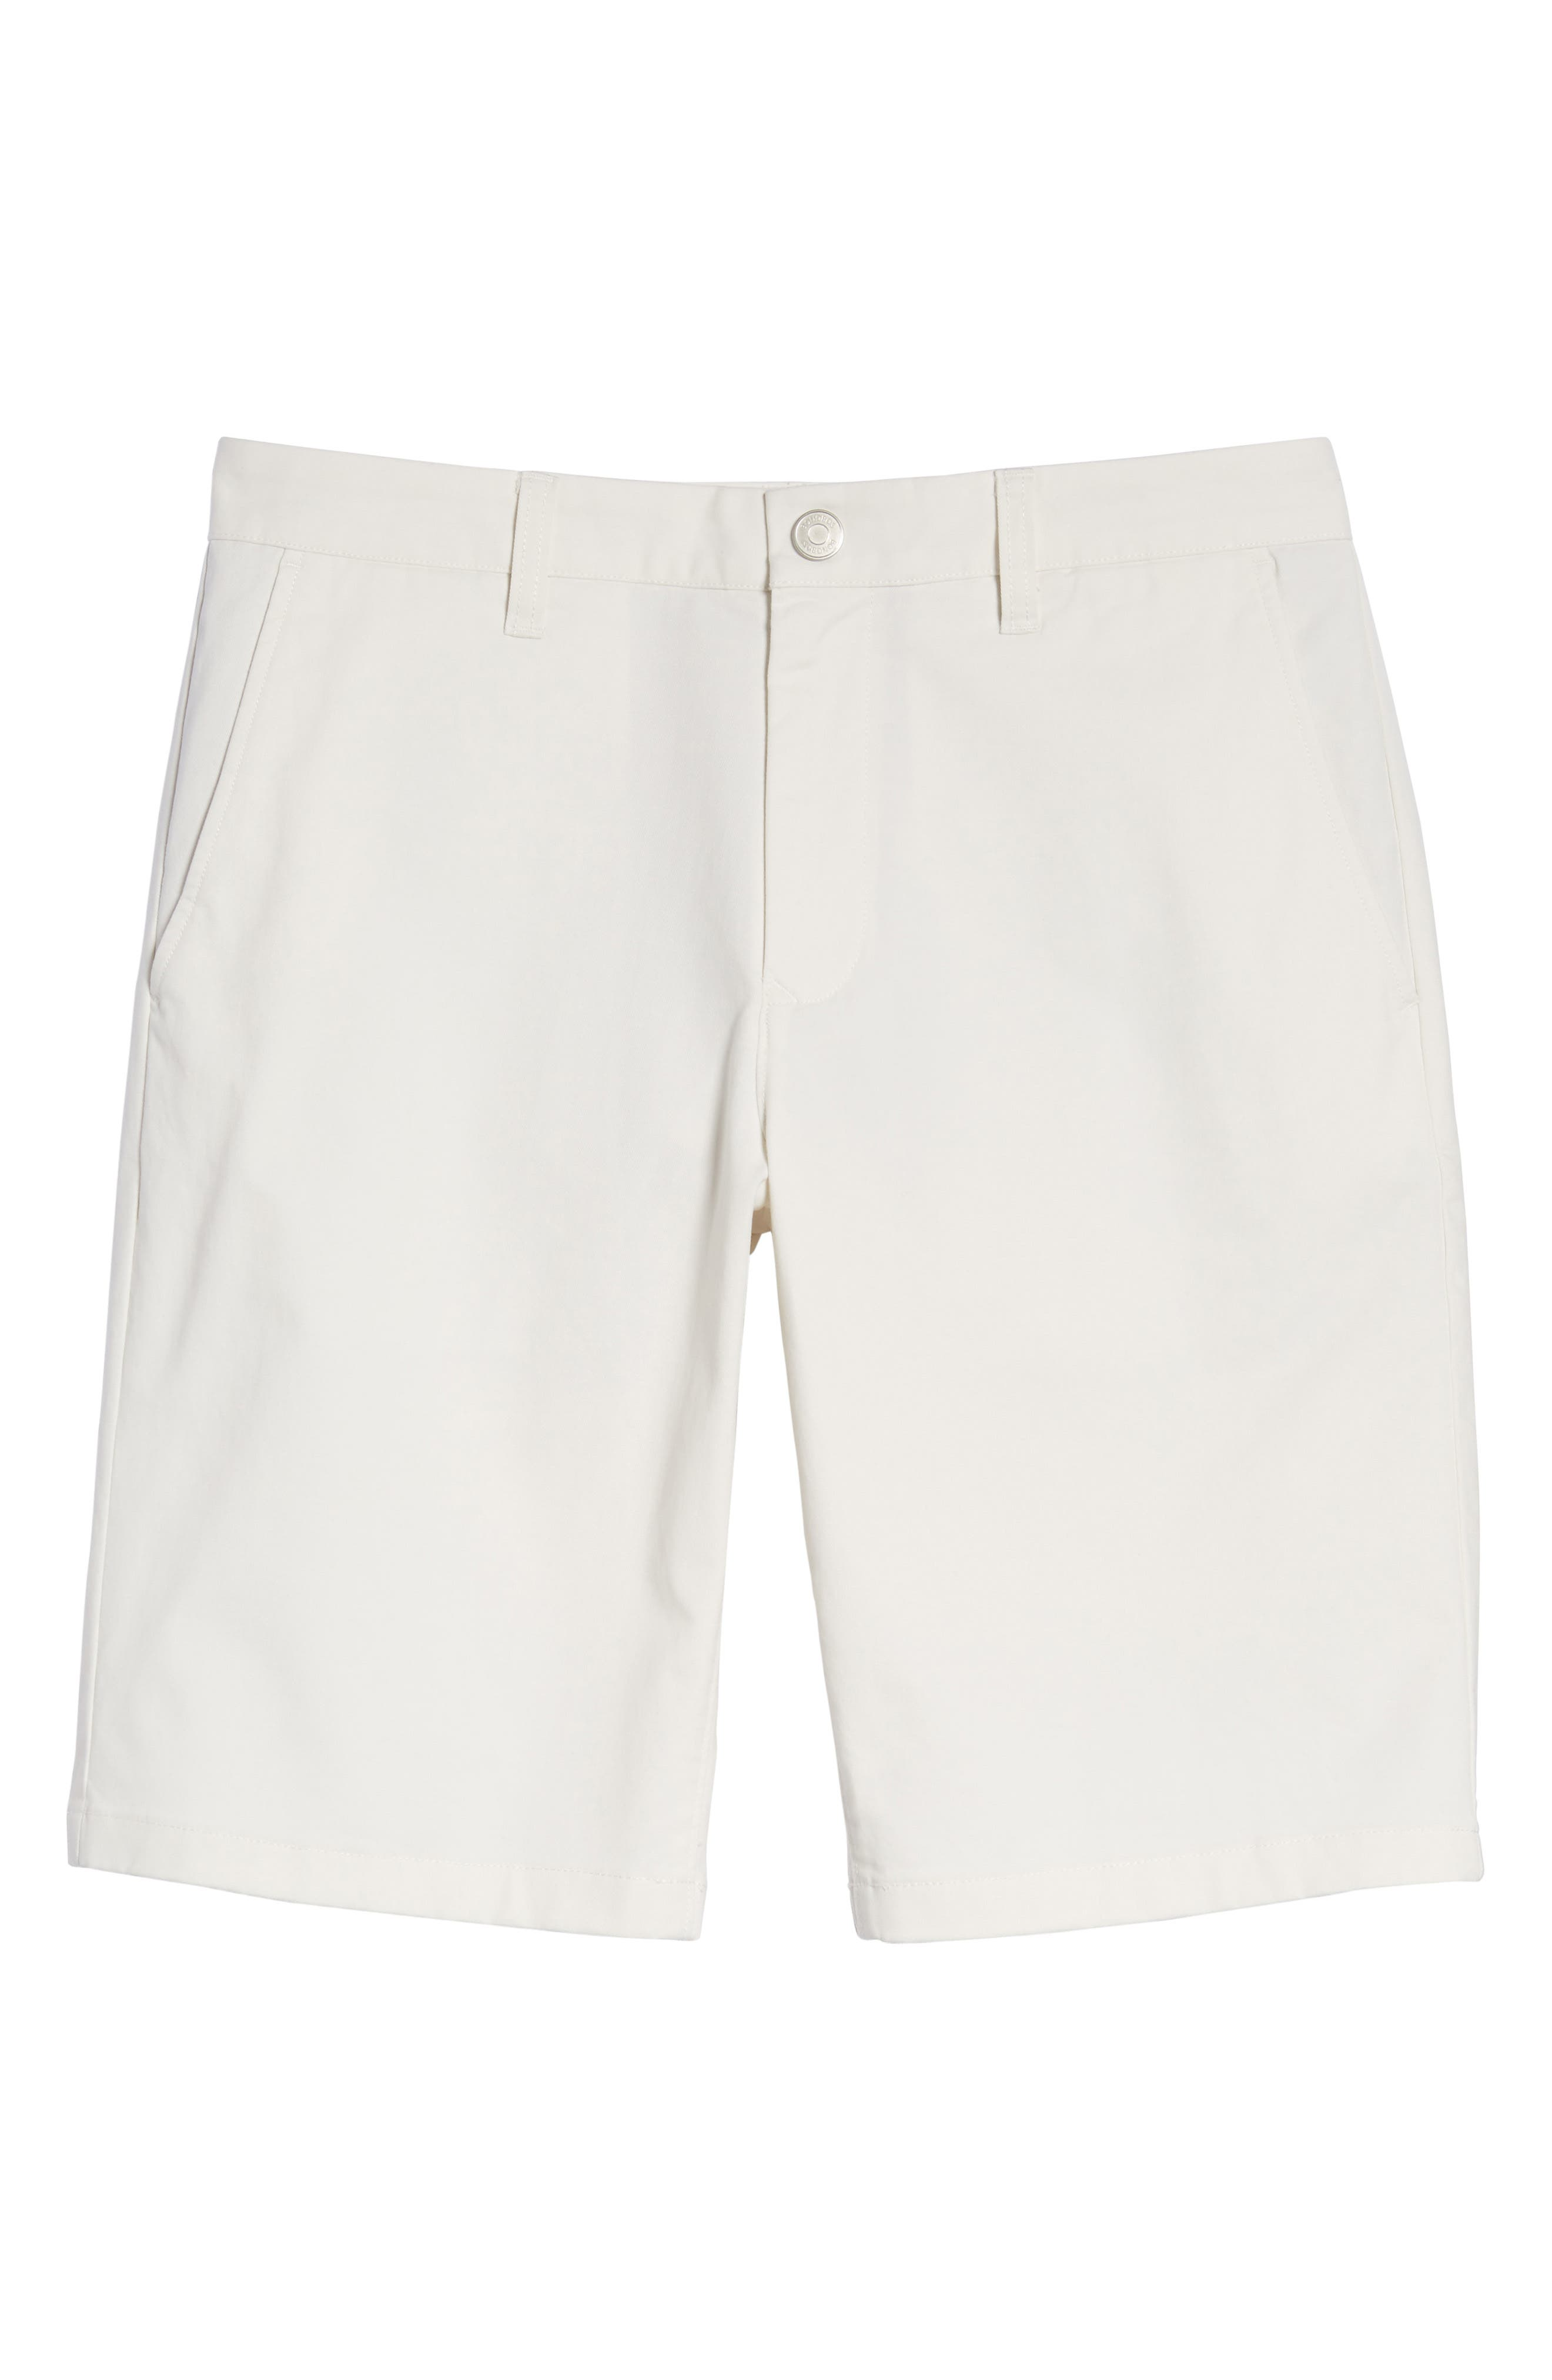 Stretch Washed Chino 11-Inch Shorts,                             Alternate thumbnail 6, color,                             100